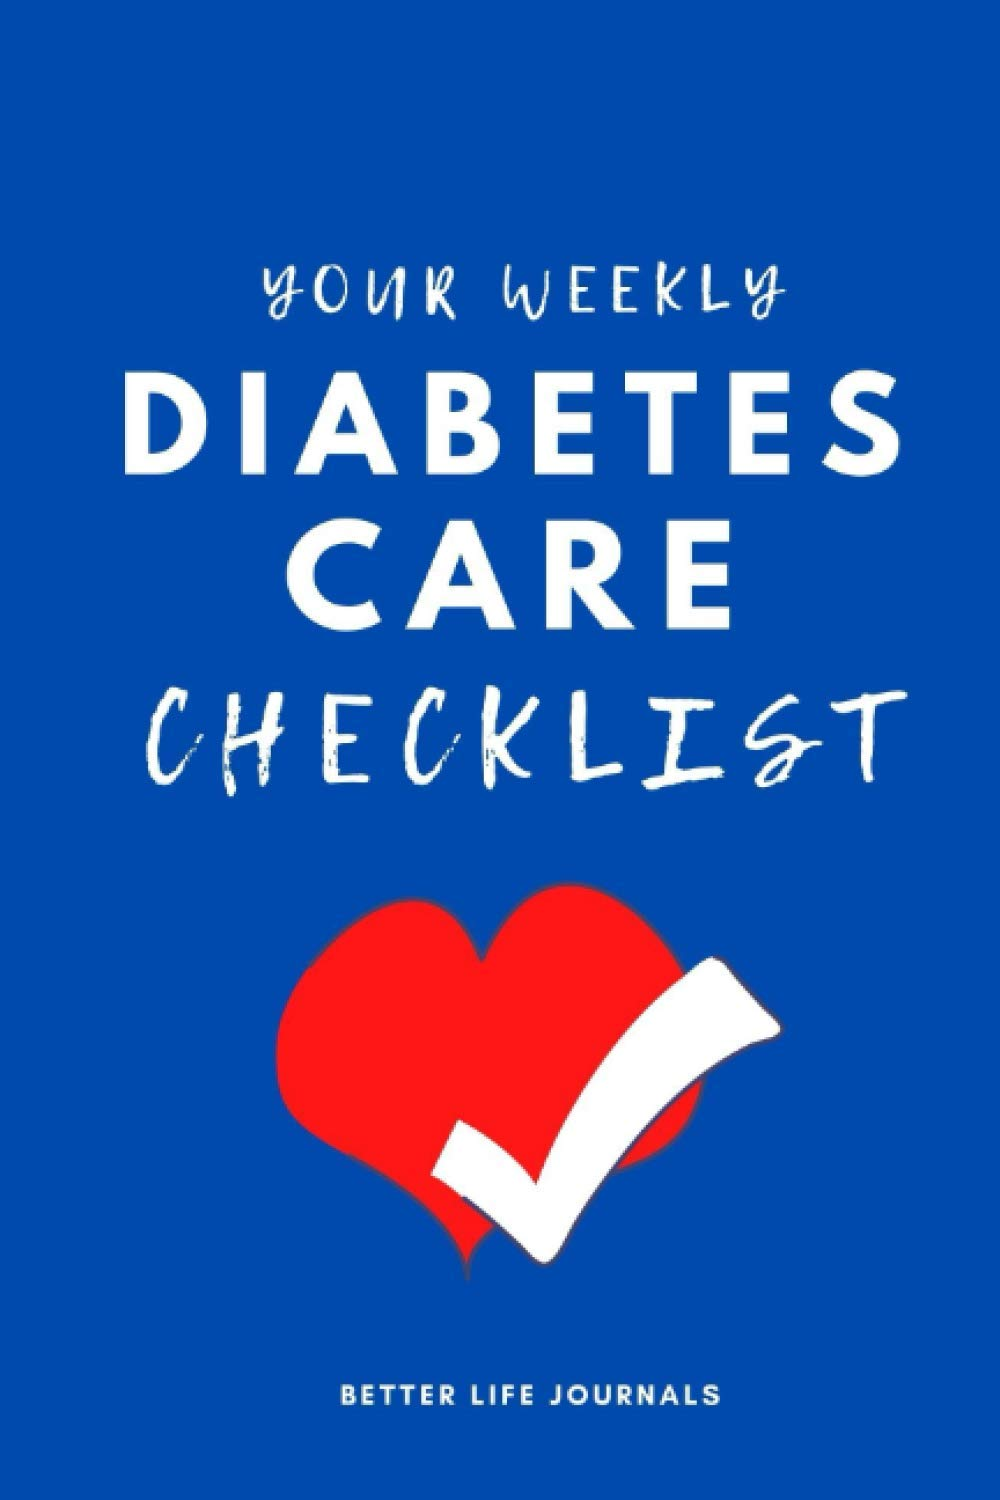 Your Weekly Diabetes Care Checklist: Your 52 Week Weekly Diabetes Care Checklist Workbook and Journal to Help You Manage Your Diabetes Better, Improve Your Health & Be More Happy! 🌟